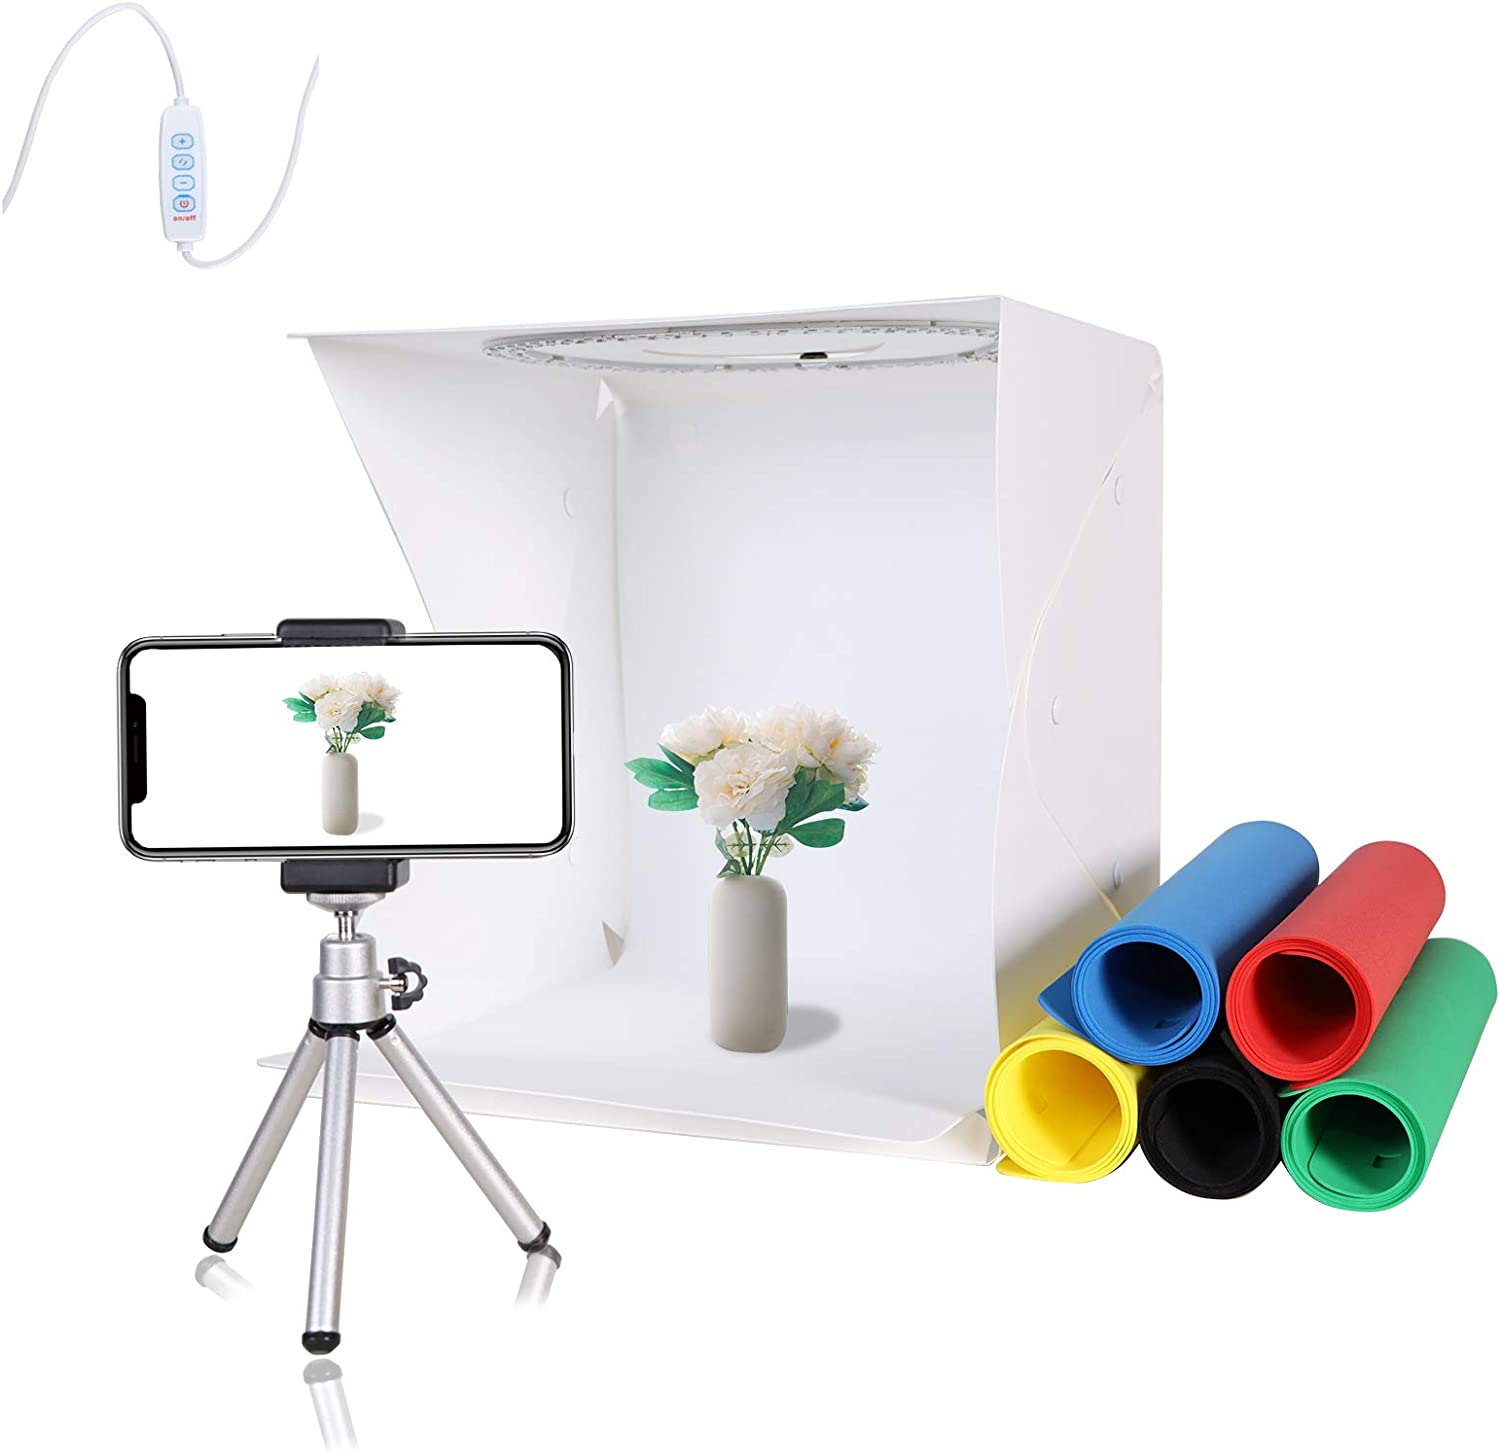 QYXINC Photo Studio Light Box with Mini Tripod,Ring Light Box with 128 LED,12.8inch Shooting Tent with 6 Color Photography Backdrop,Portable Folding Photo Studio Box with White Light Warm Light